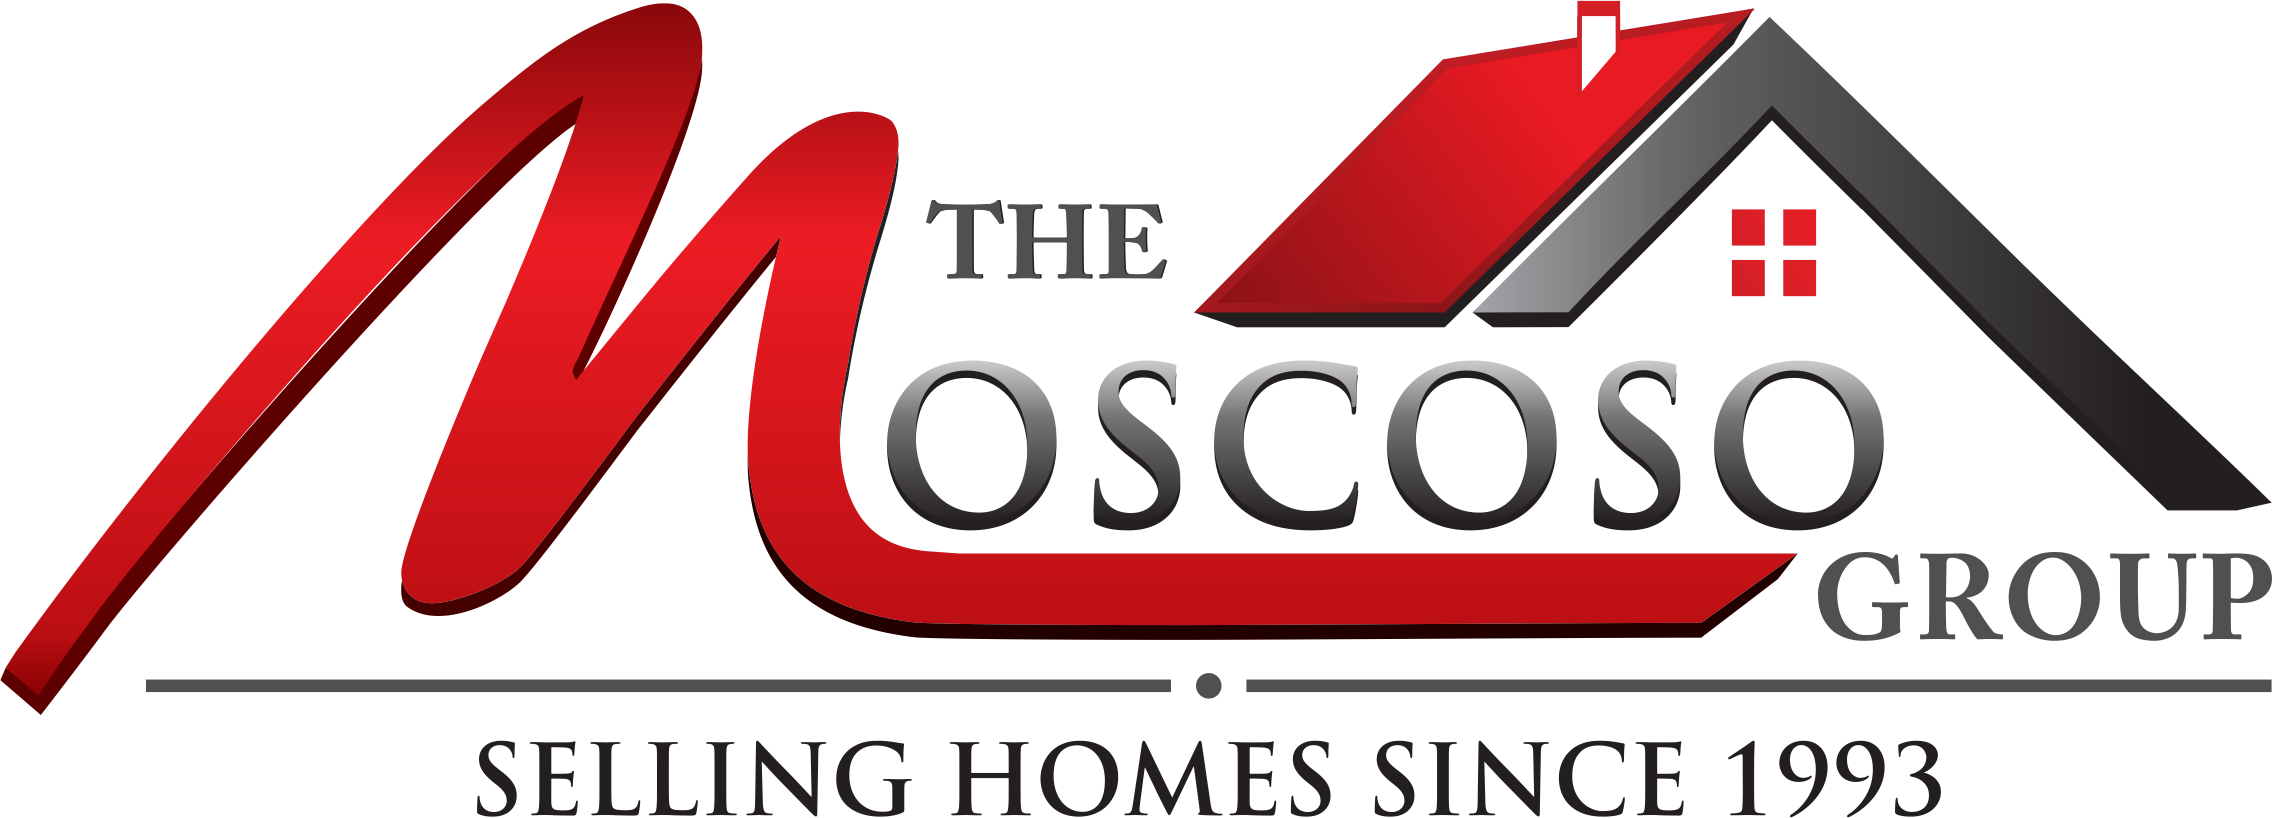 The Moscoso Group logo